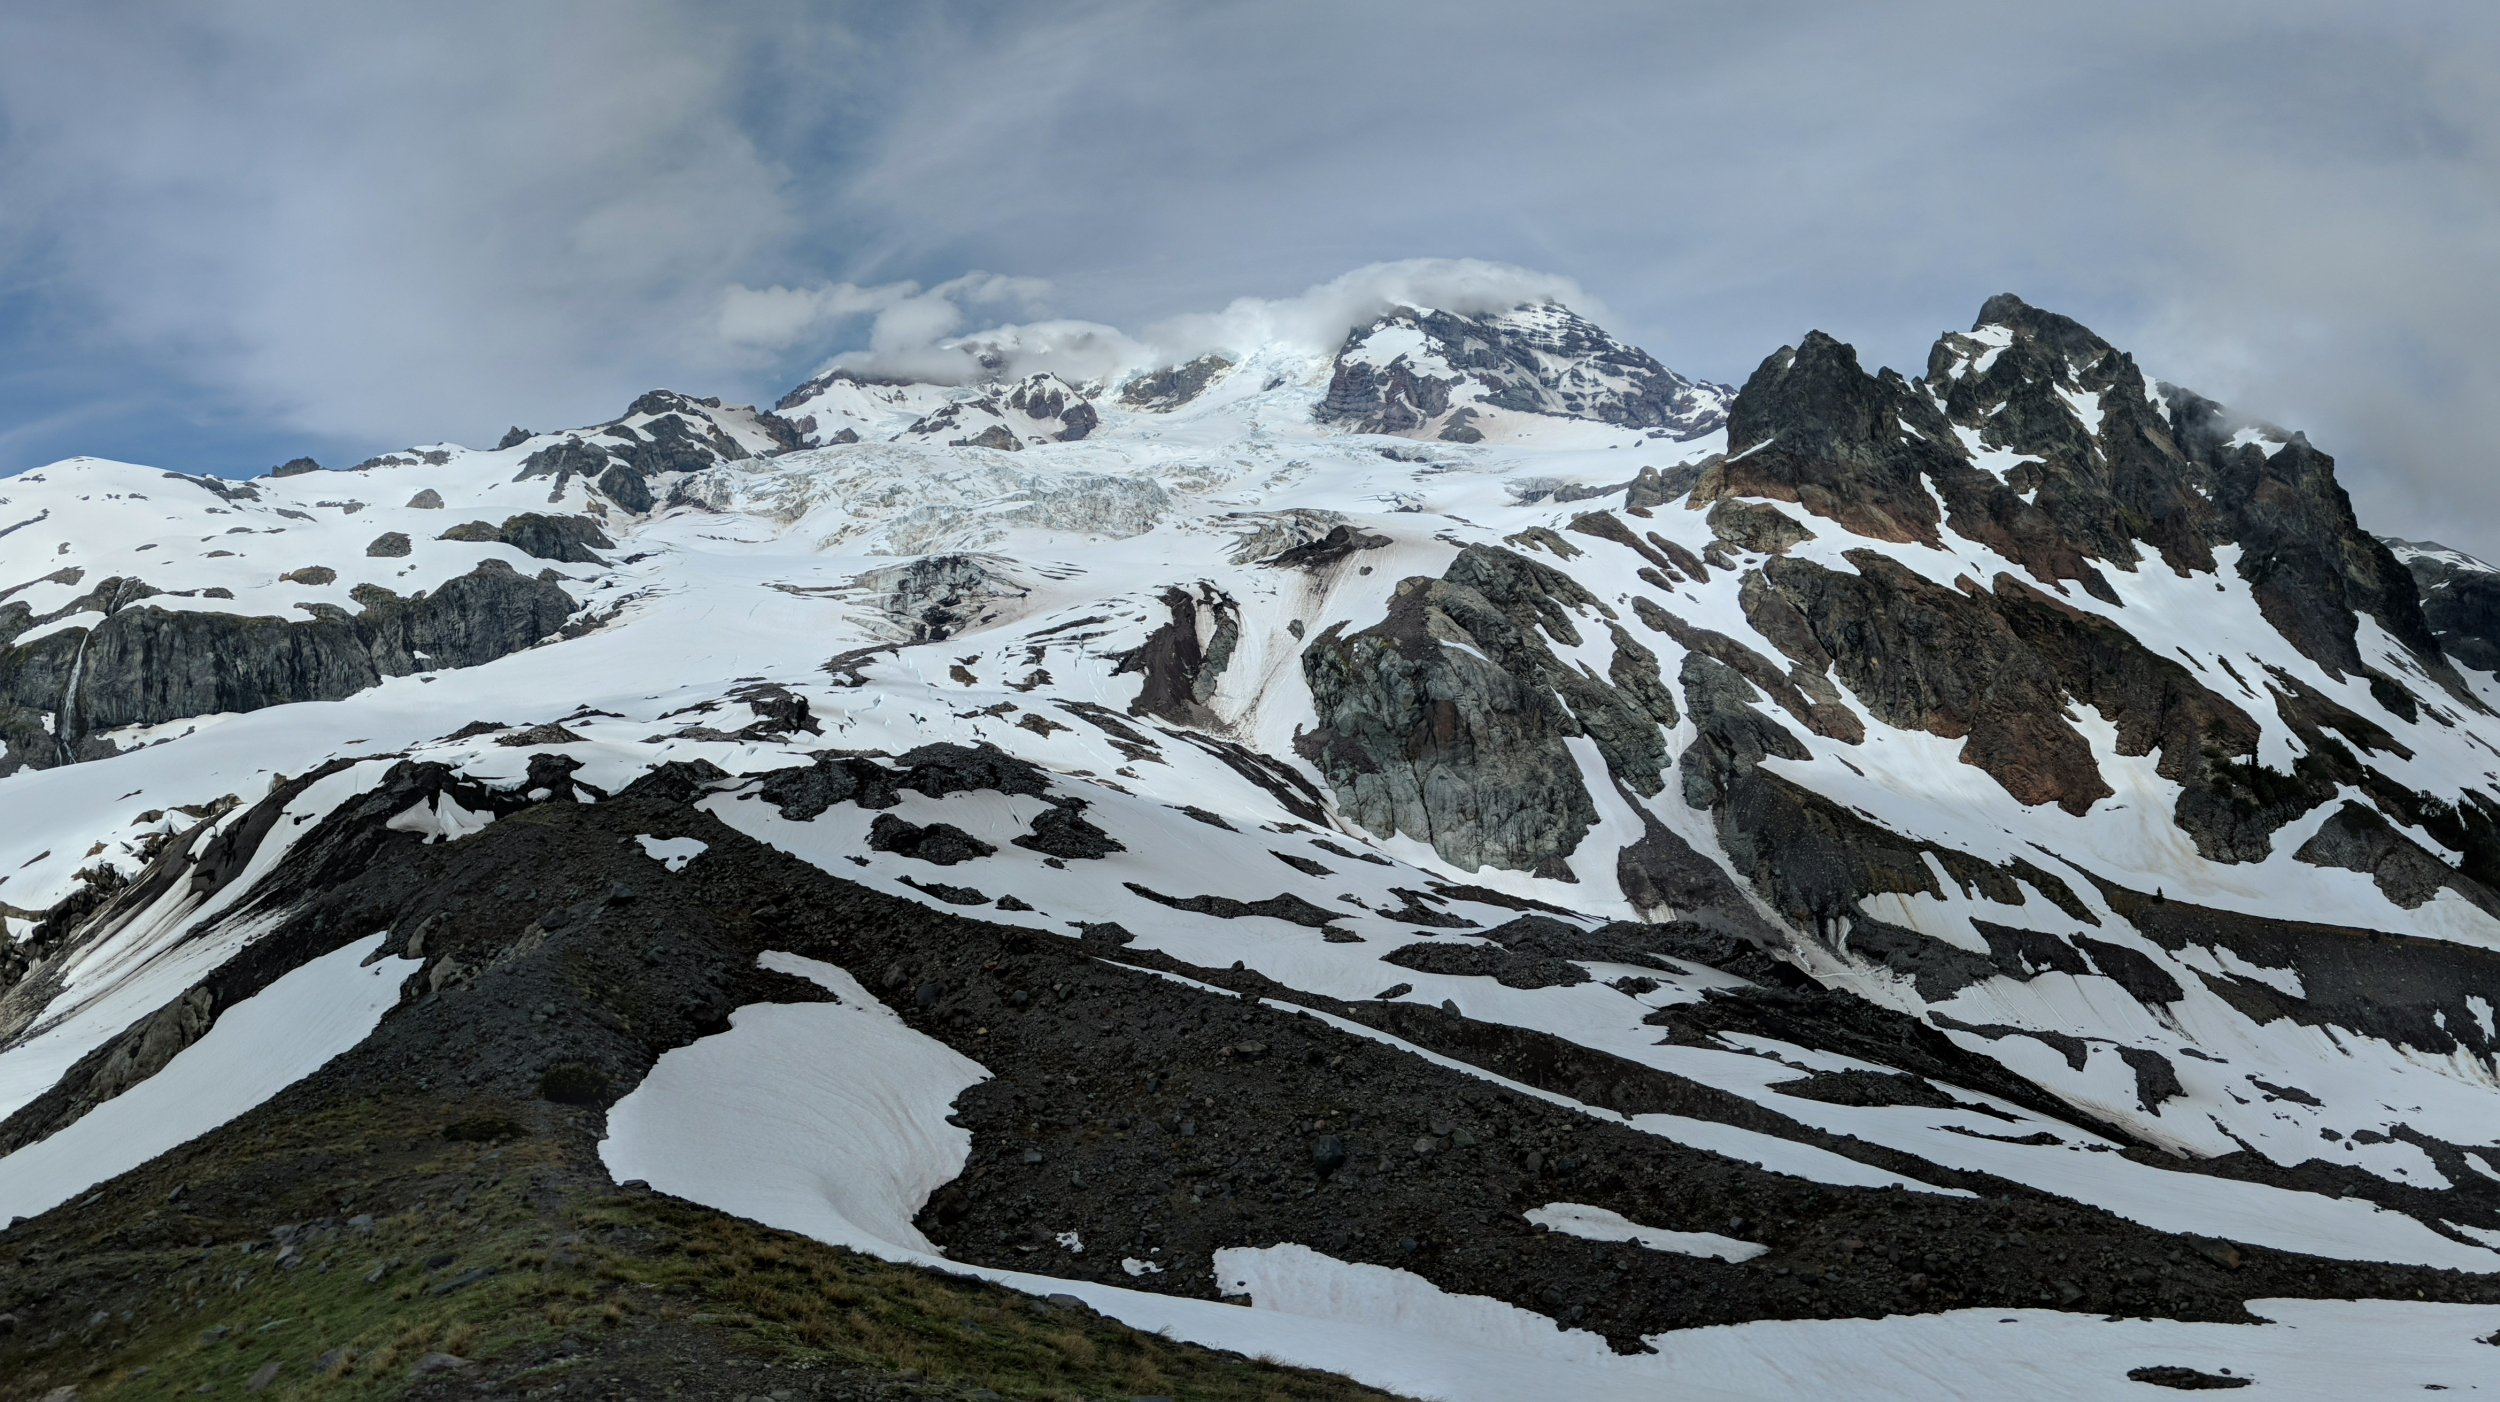 Toe of Tahoma Glacier, Glacier Island on the right.